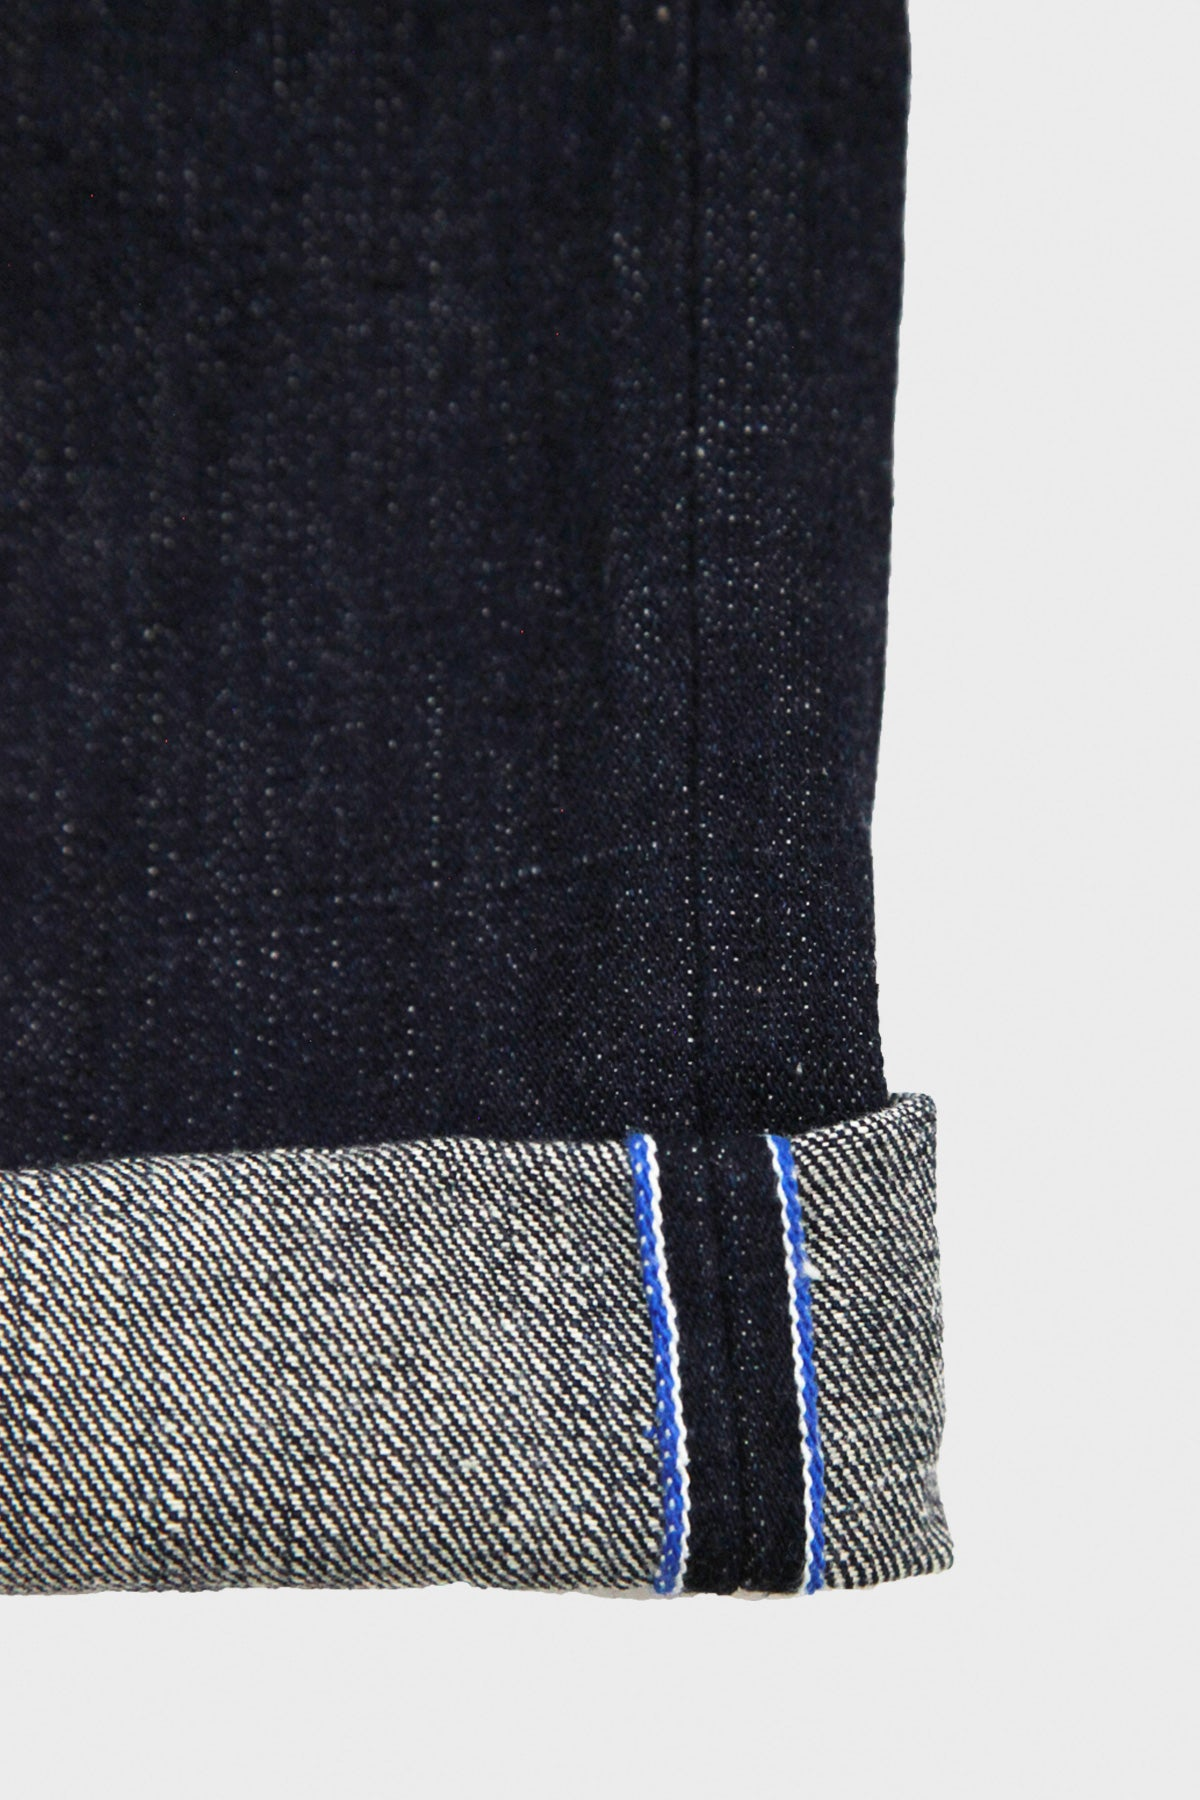 Tanuki - High Tapered Fit - Natural Indigo Denim - Canoe Club